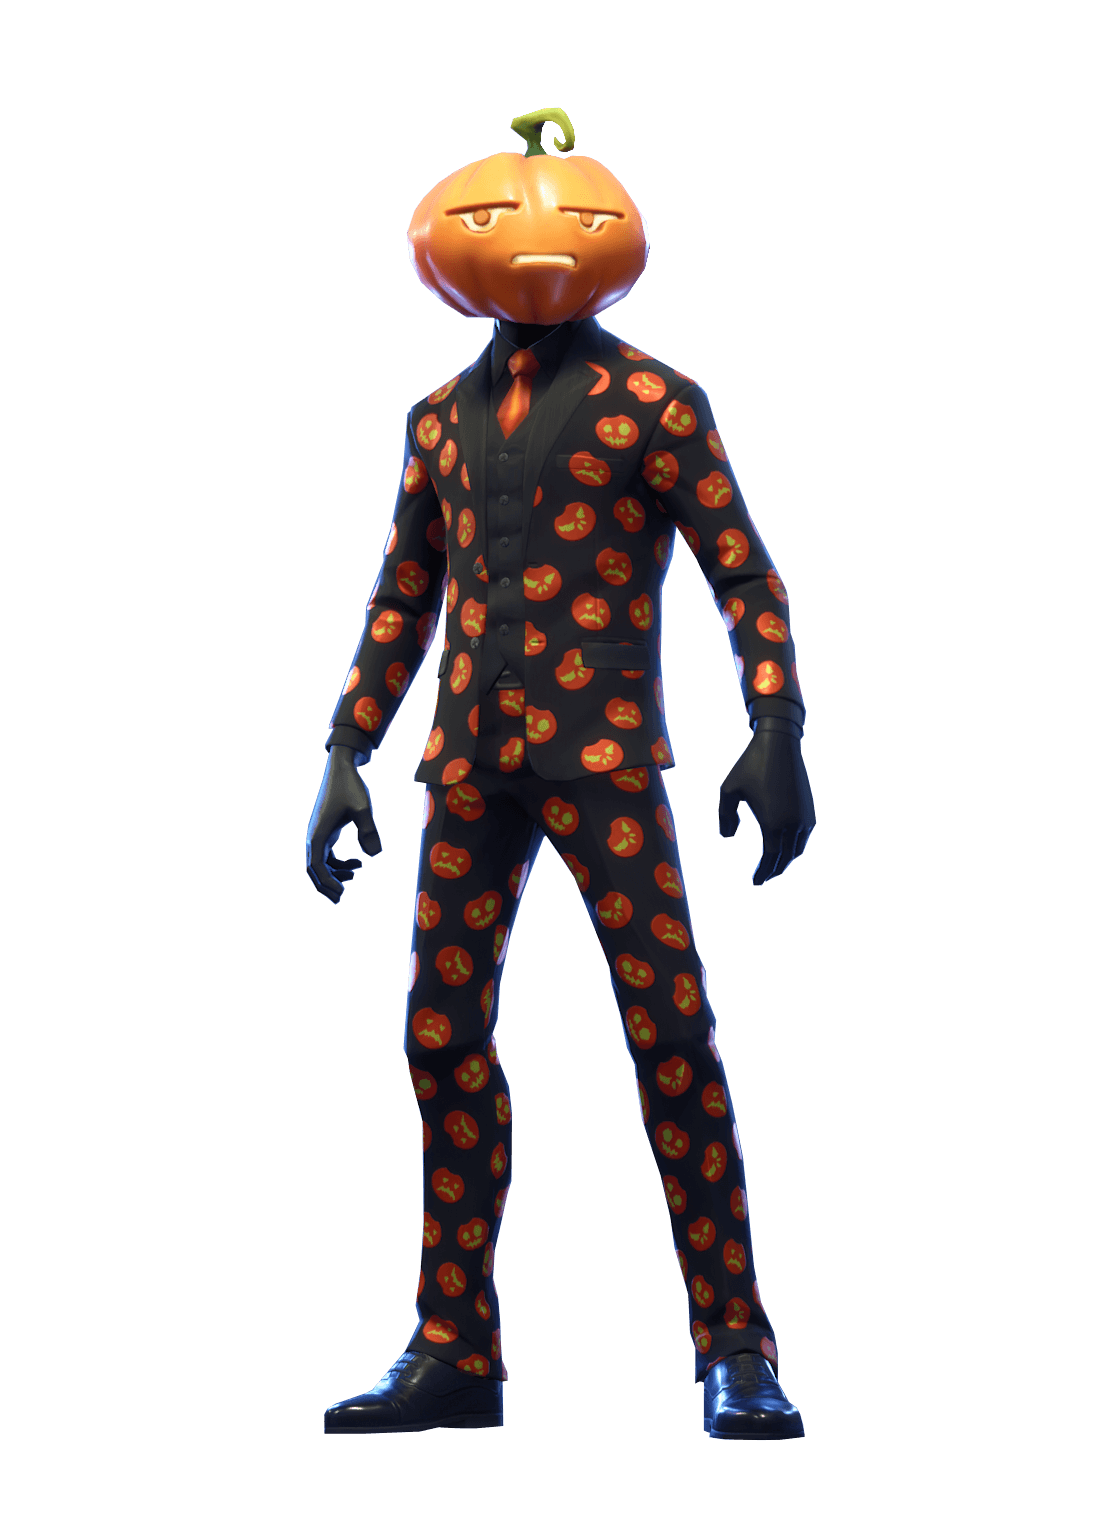 Jack Gourdon Fortnite Skin Full Body PNG Image - PurePNG | Free ...